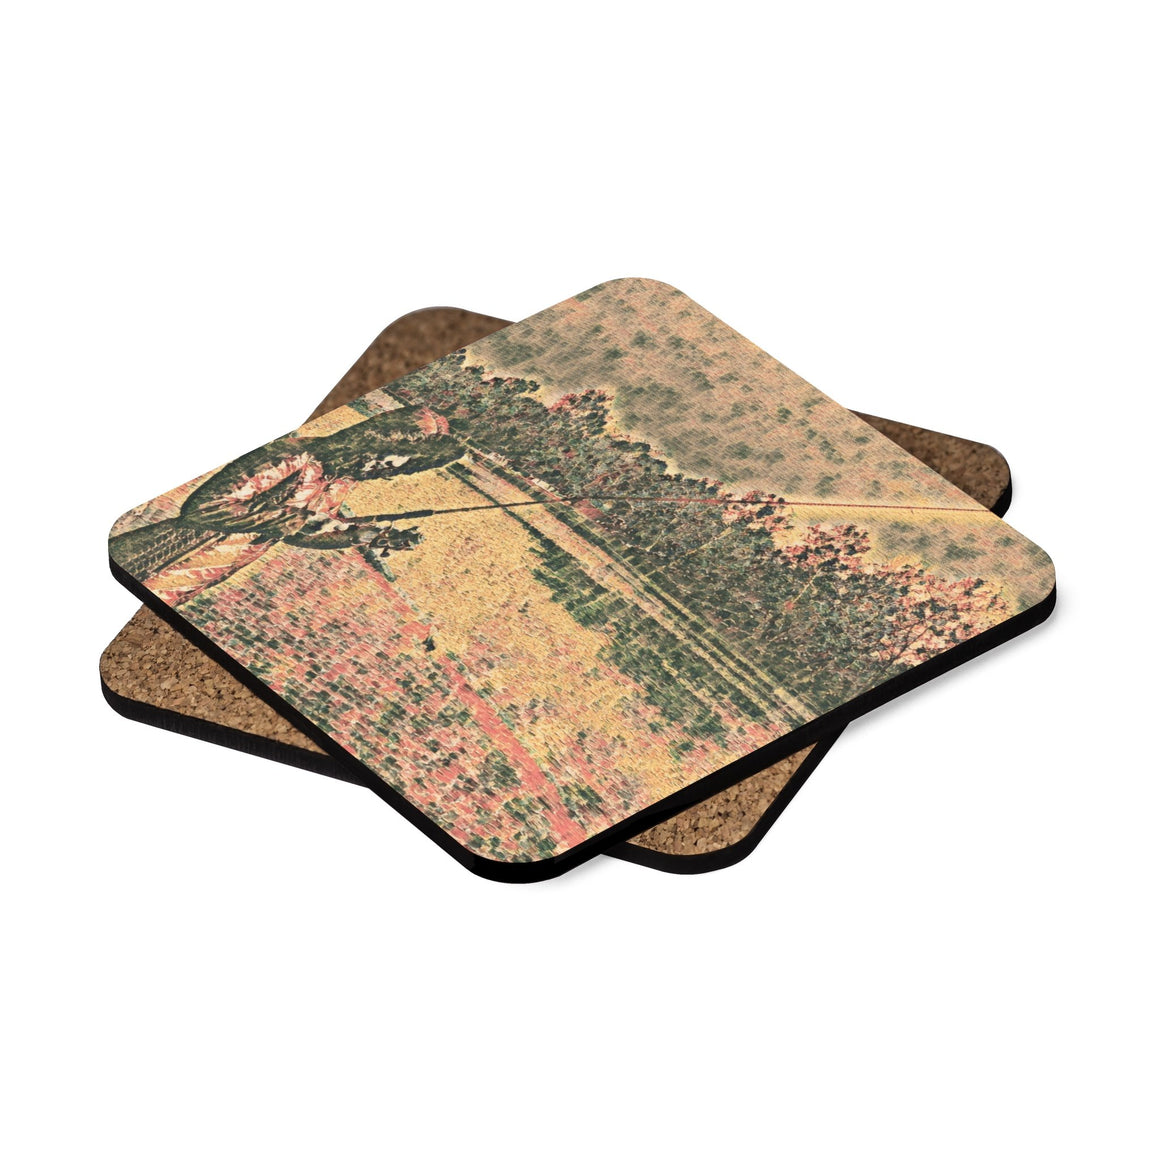 Levi Thang Fishing Design 36 Square Hardboard Coaster Set - 4pcs - I Am A Dreamer